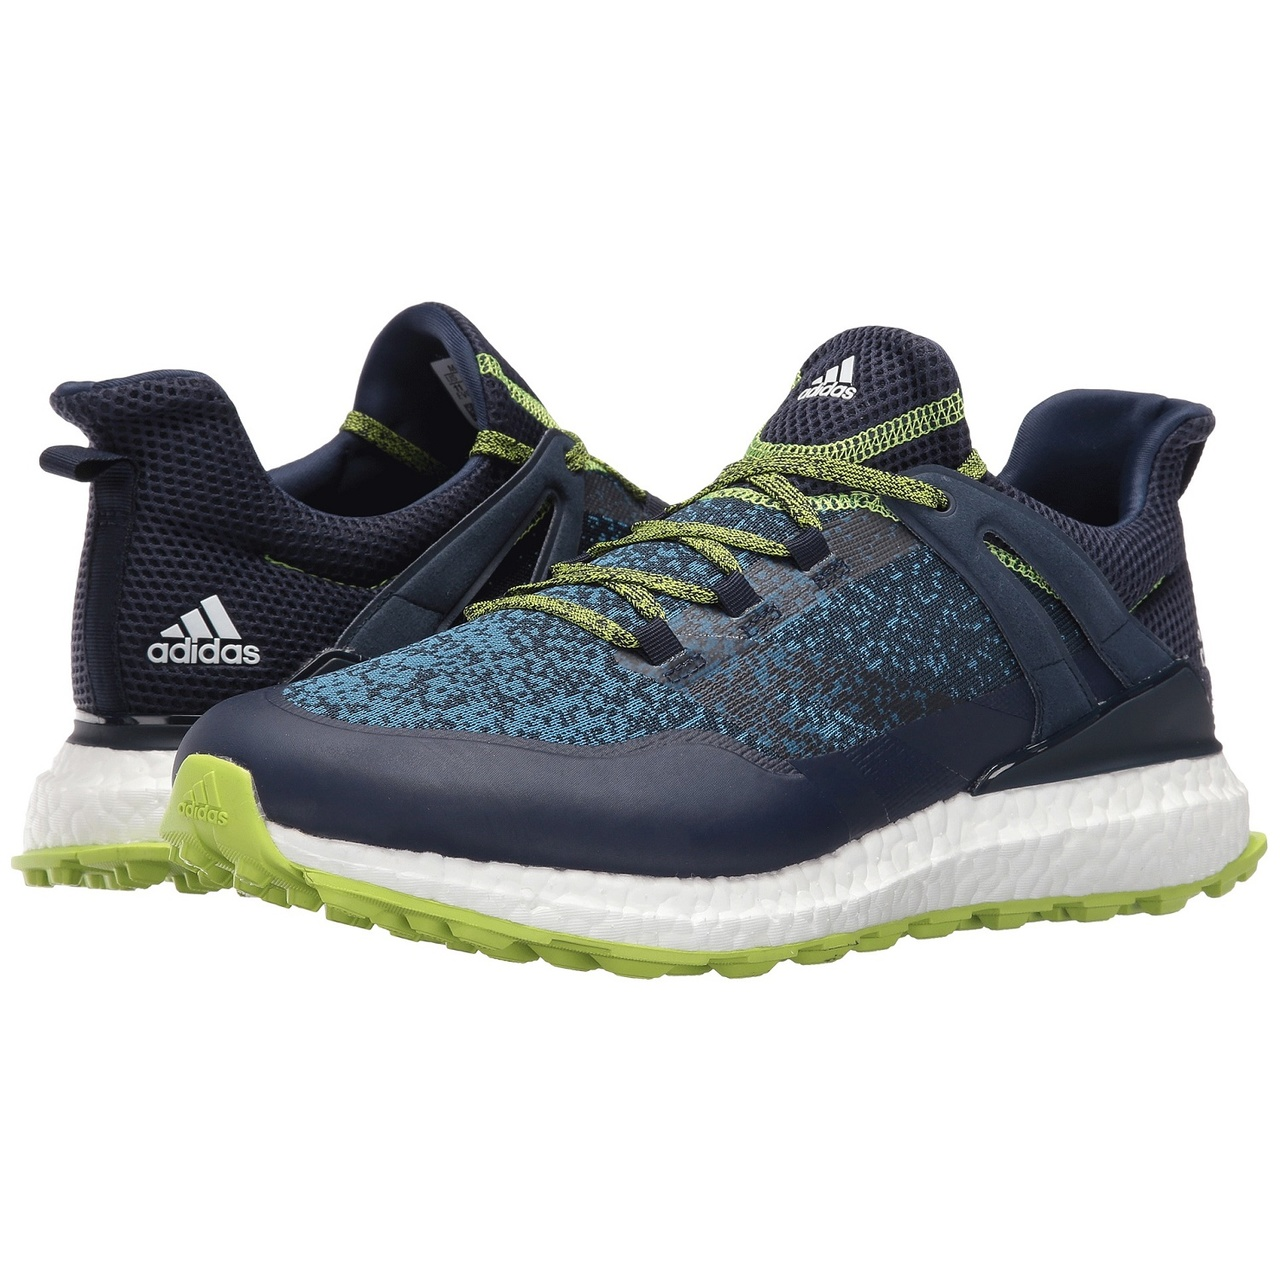 new arrival fa8ac 925b8 adidas Crossknit Boost Mens Spikeless Golf Shoes - Collegiate NavySolar  SlimeWhite